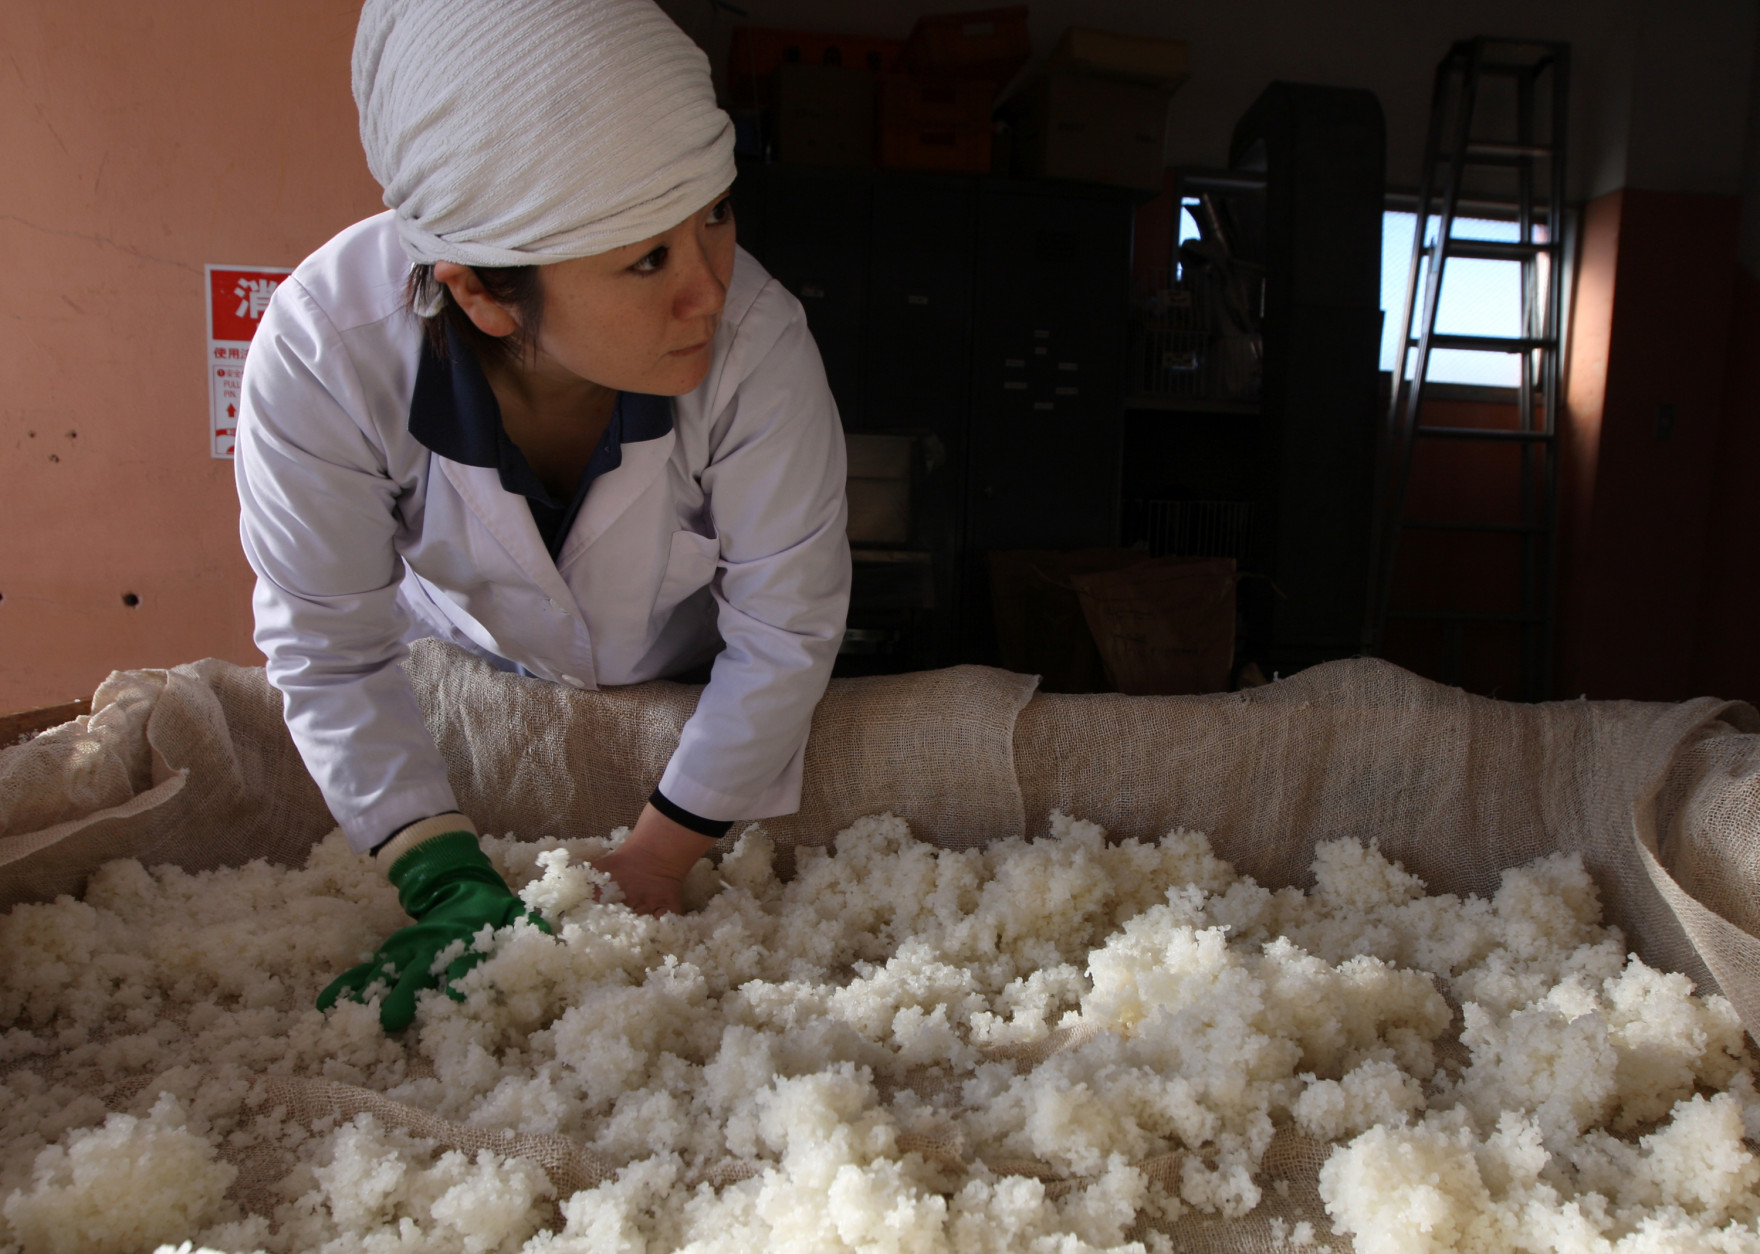 HIMEJI, JAPAN - NOVEMBER 16:  Misa Kawaisi, chief sake brew master, cools steamed rice at Nadagiku-Shozo sake brewery on November 16, 2012 in Himeji, Japan. Kawaishi, one of a few female sake brew masters, is a unique figure in male-diminated sake brewers world.  (Photo by Buddhika Weerasinghe/Getty Images)